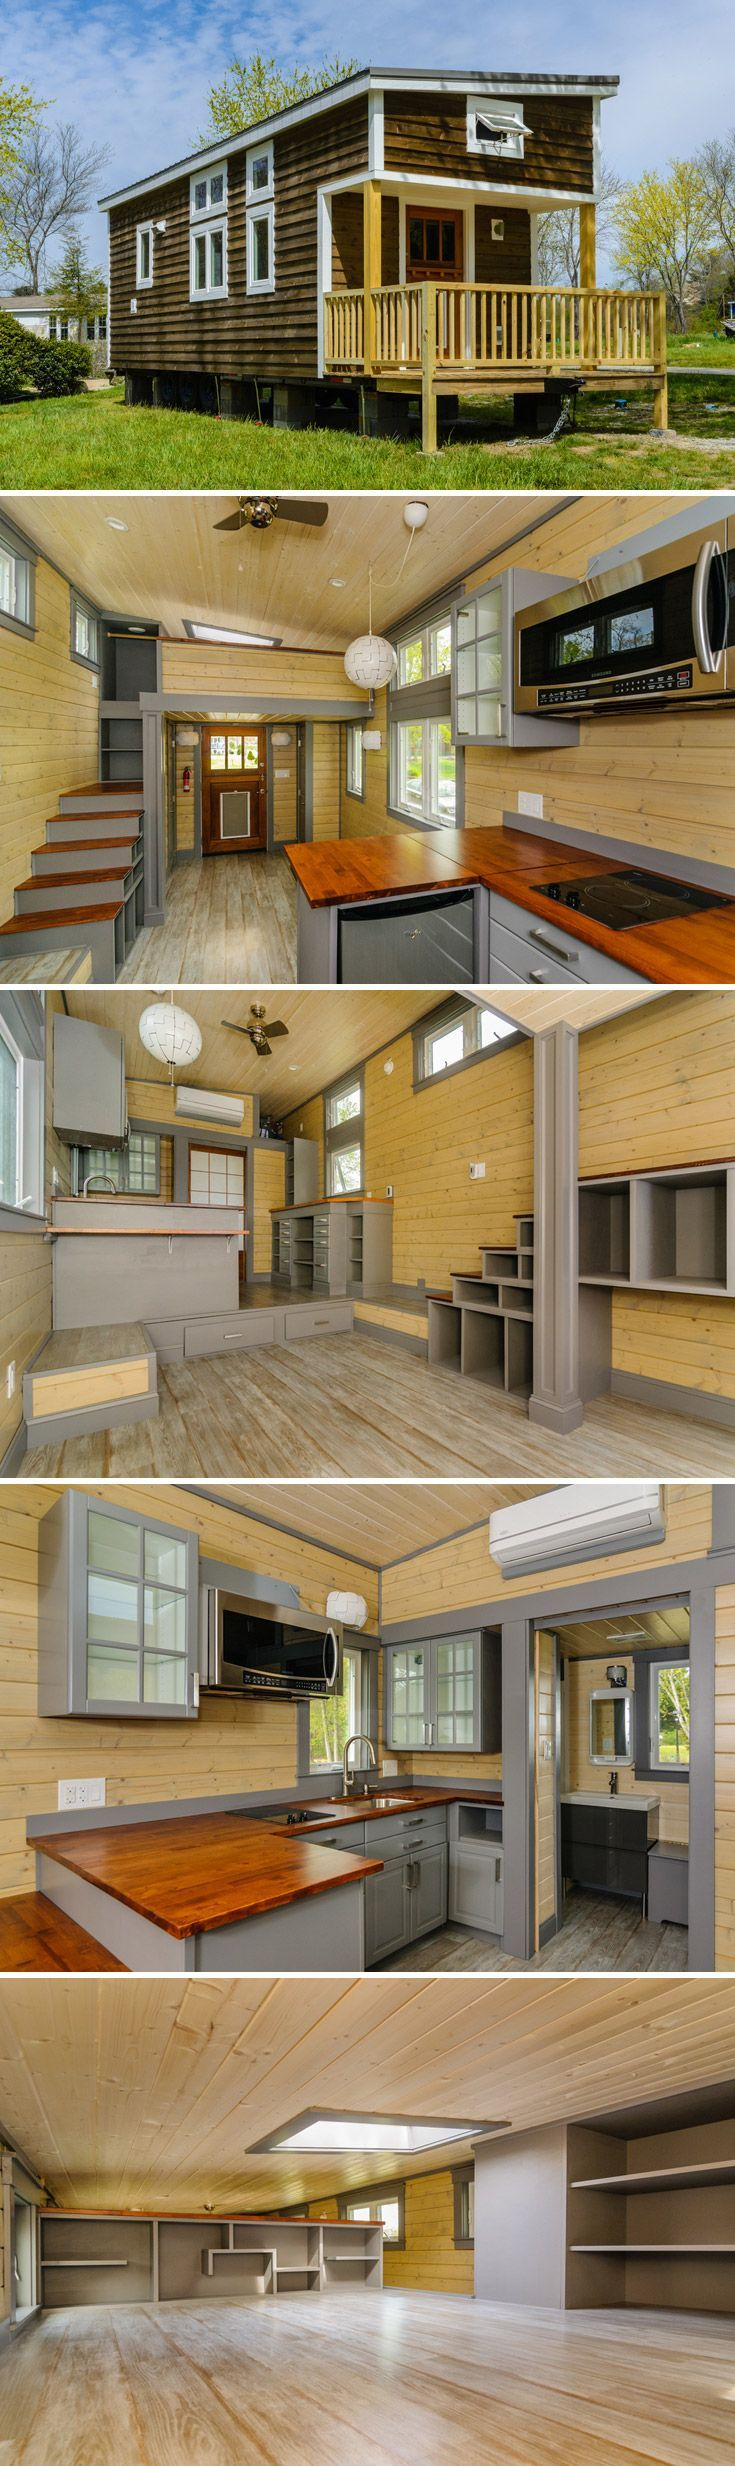 awesome A 300 sq.ft tiny house with impressive interior includes an abundance of storage... by http://www.danaz-home-decorations.xyz/tiny-homes/a-300-sq-ft-tiny-house-with-impressive-interior-includes-an-abundance-of-storage/